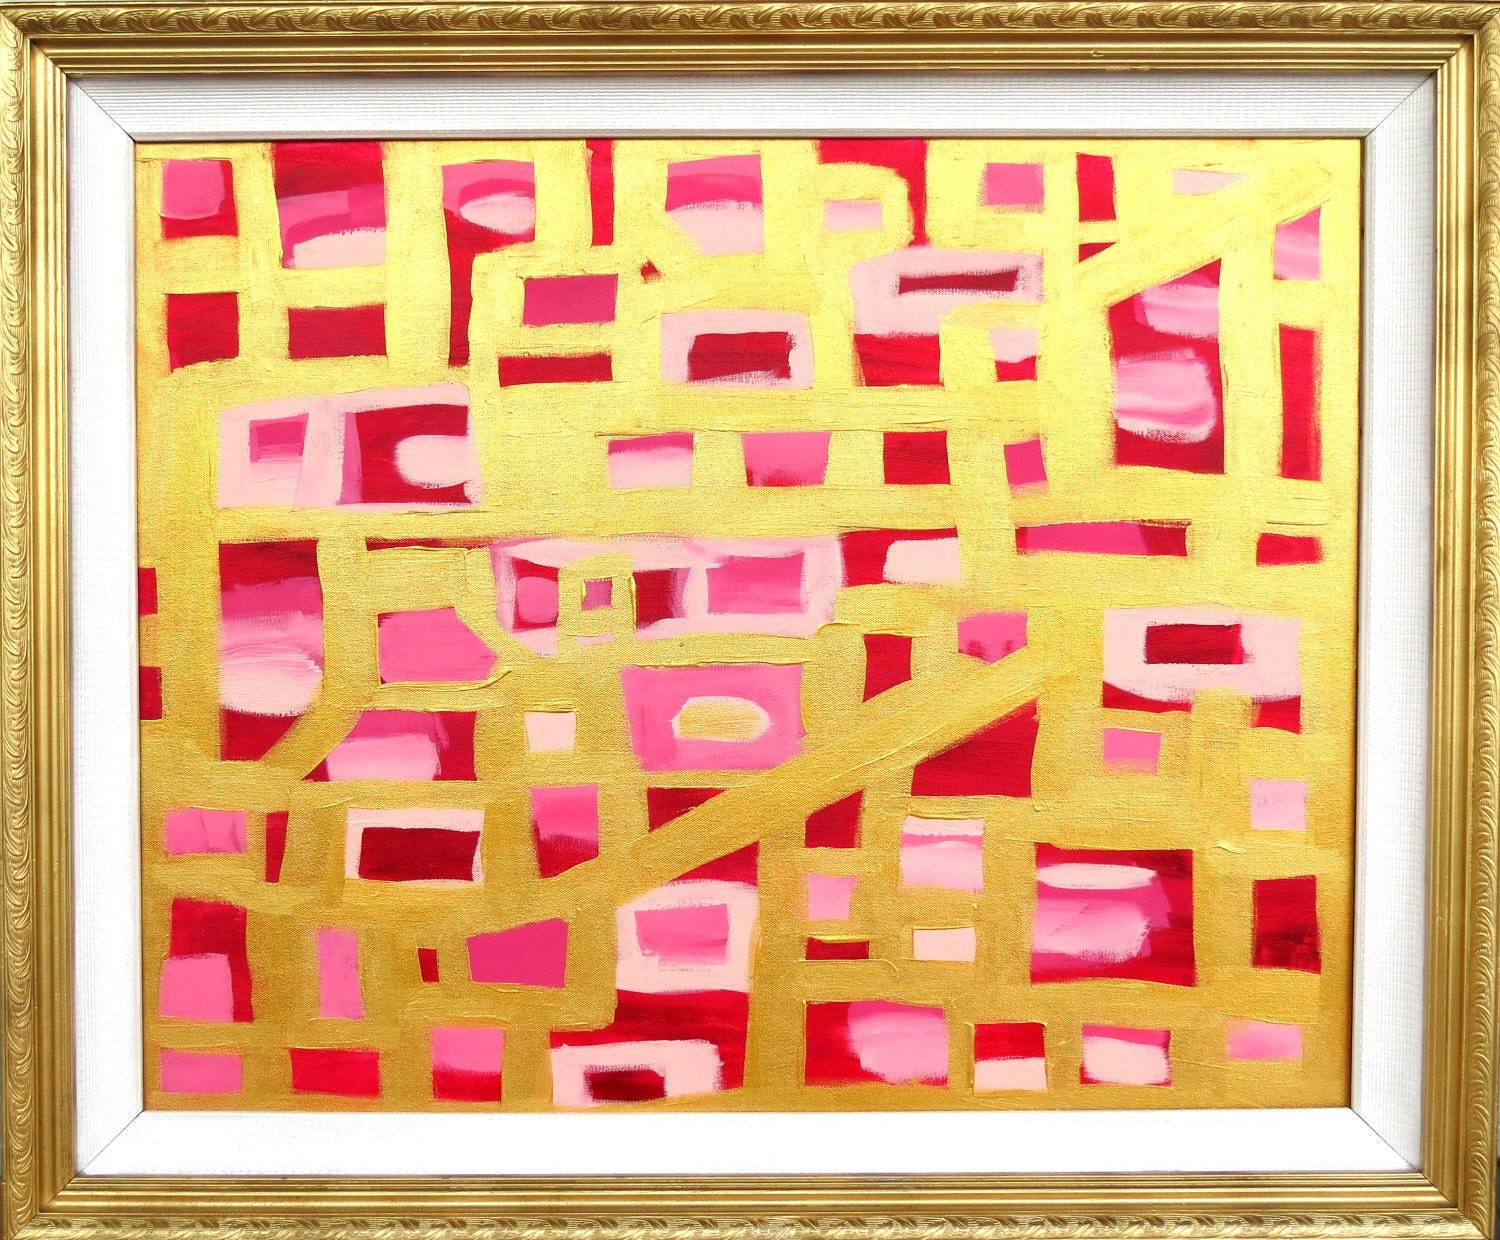 31 Rue Cambon Chanel Inspired Abstract with Gold and Pinks